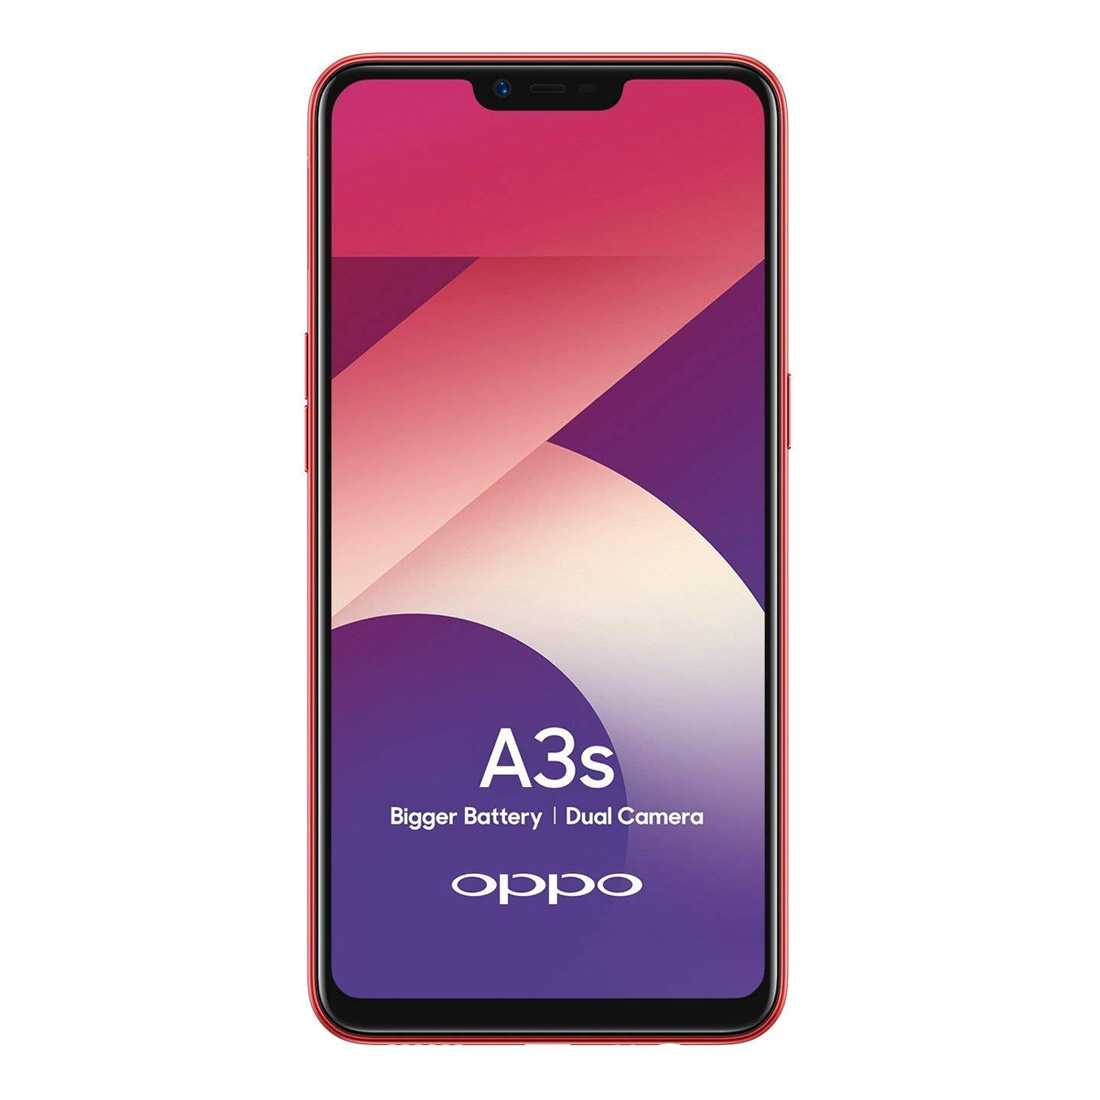 [CPO - As New] OPPO A3s (Dual Sim 4G/3G) - Red